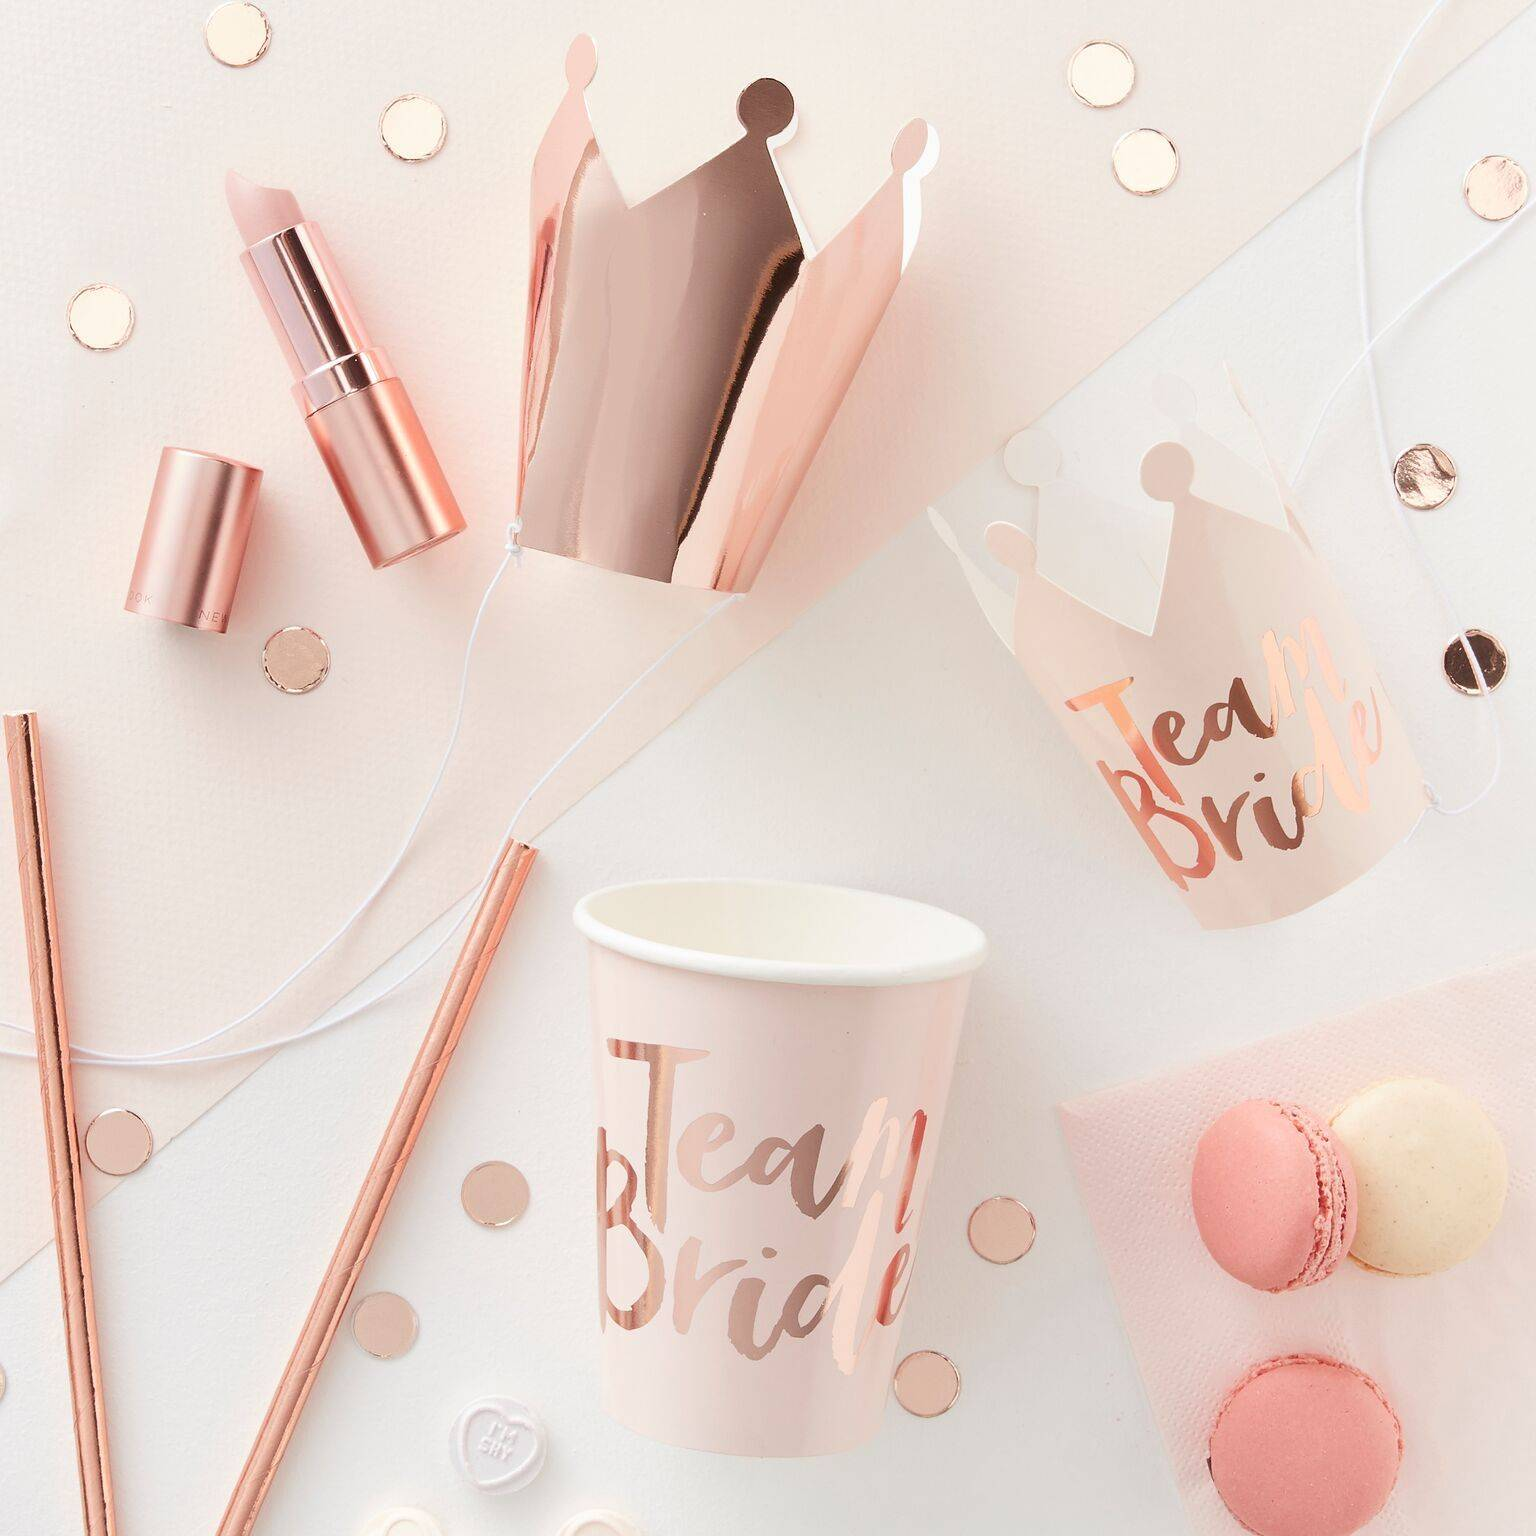 A flat lay photo of the Team Bride hen party collection including rose gold 'team bride' party cups, party crowns and hen party confetti for table decoration